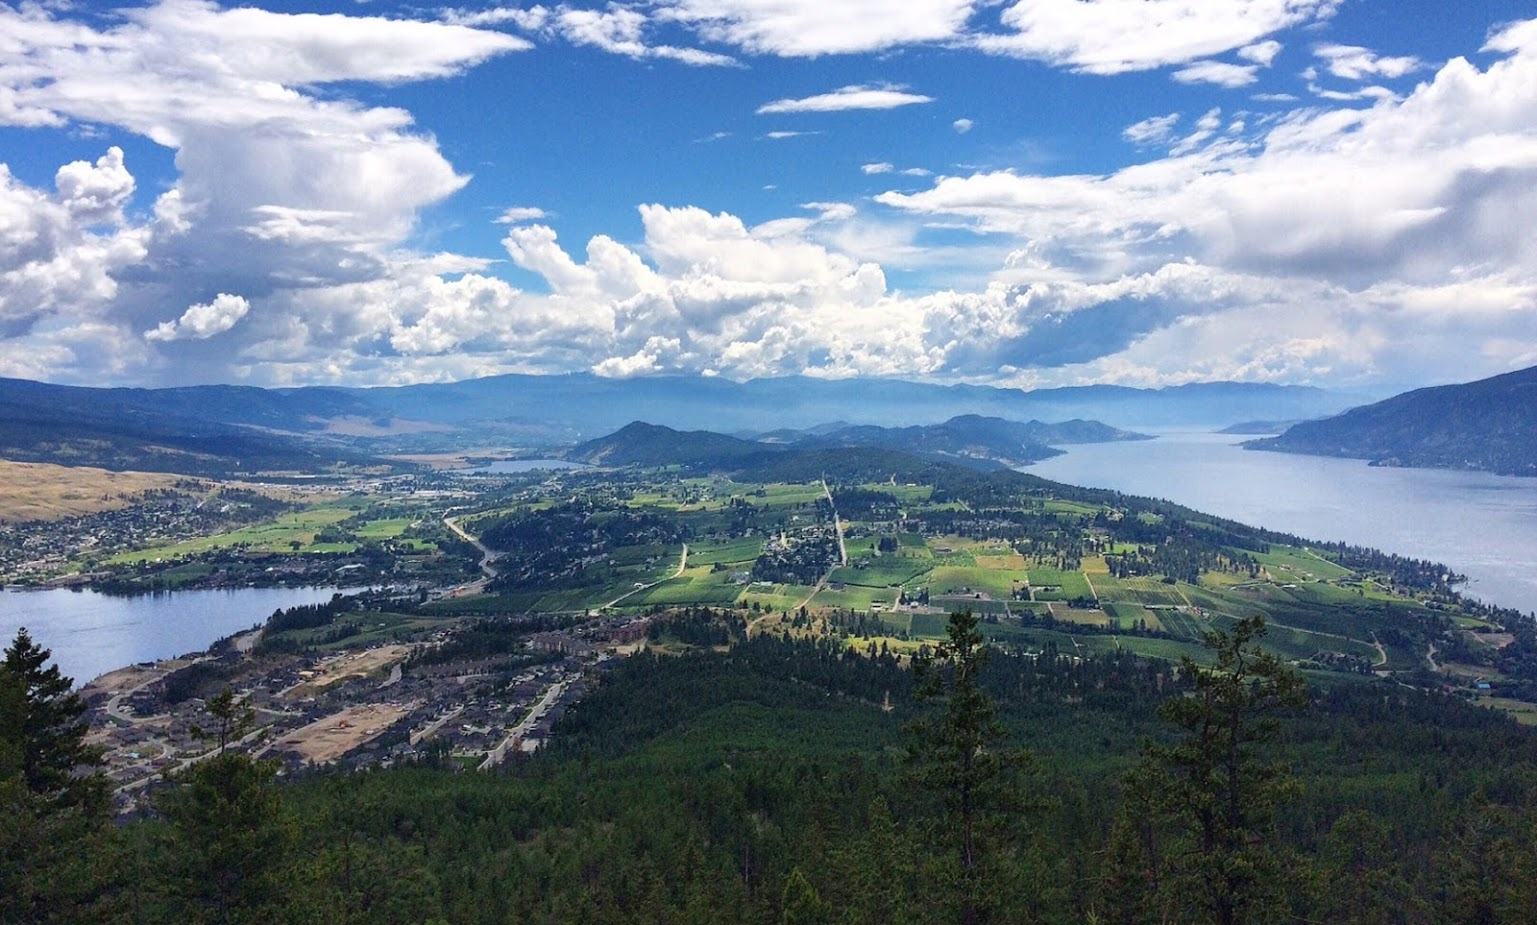 view over Okanagan Lake and Wood Lake from the top of Spion Kop